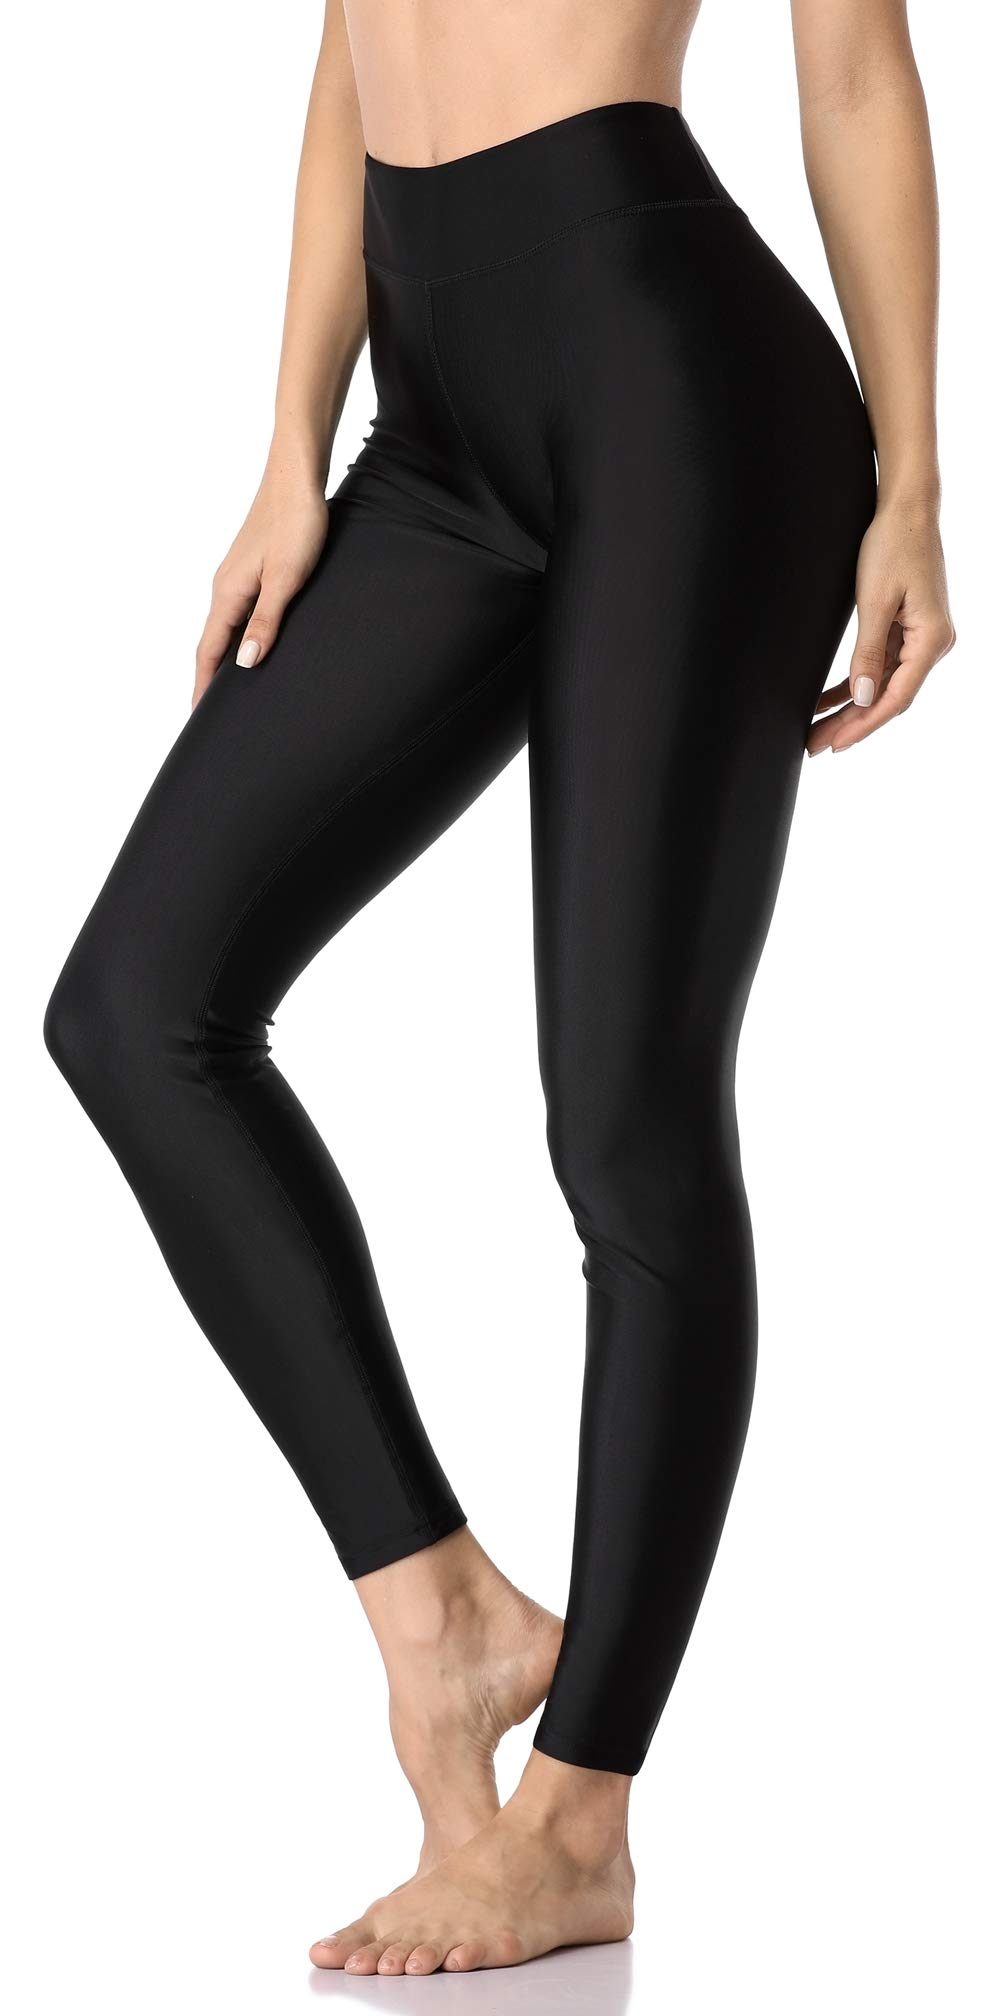 ATTRACO Swim Pants for Women Long Swimming Tights Wetsuit Pants Black X-Large by ATTRACO